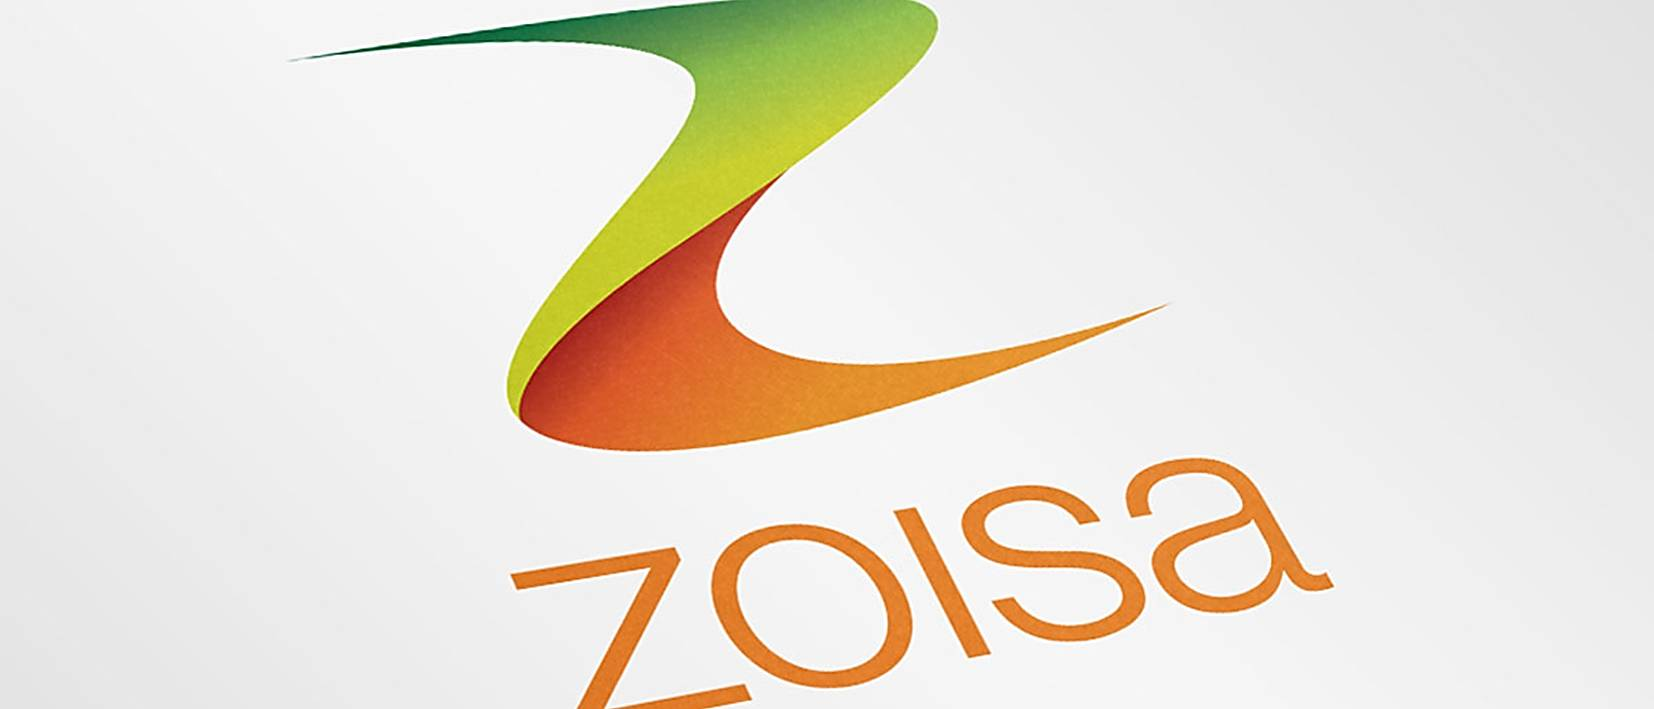 Zoisa logo printed on white